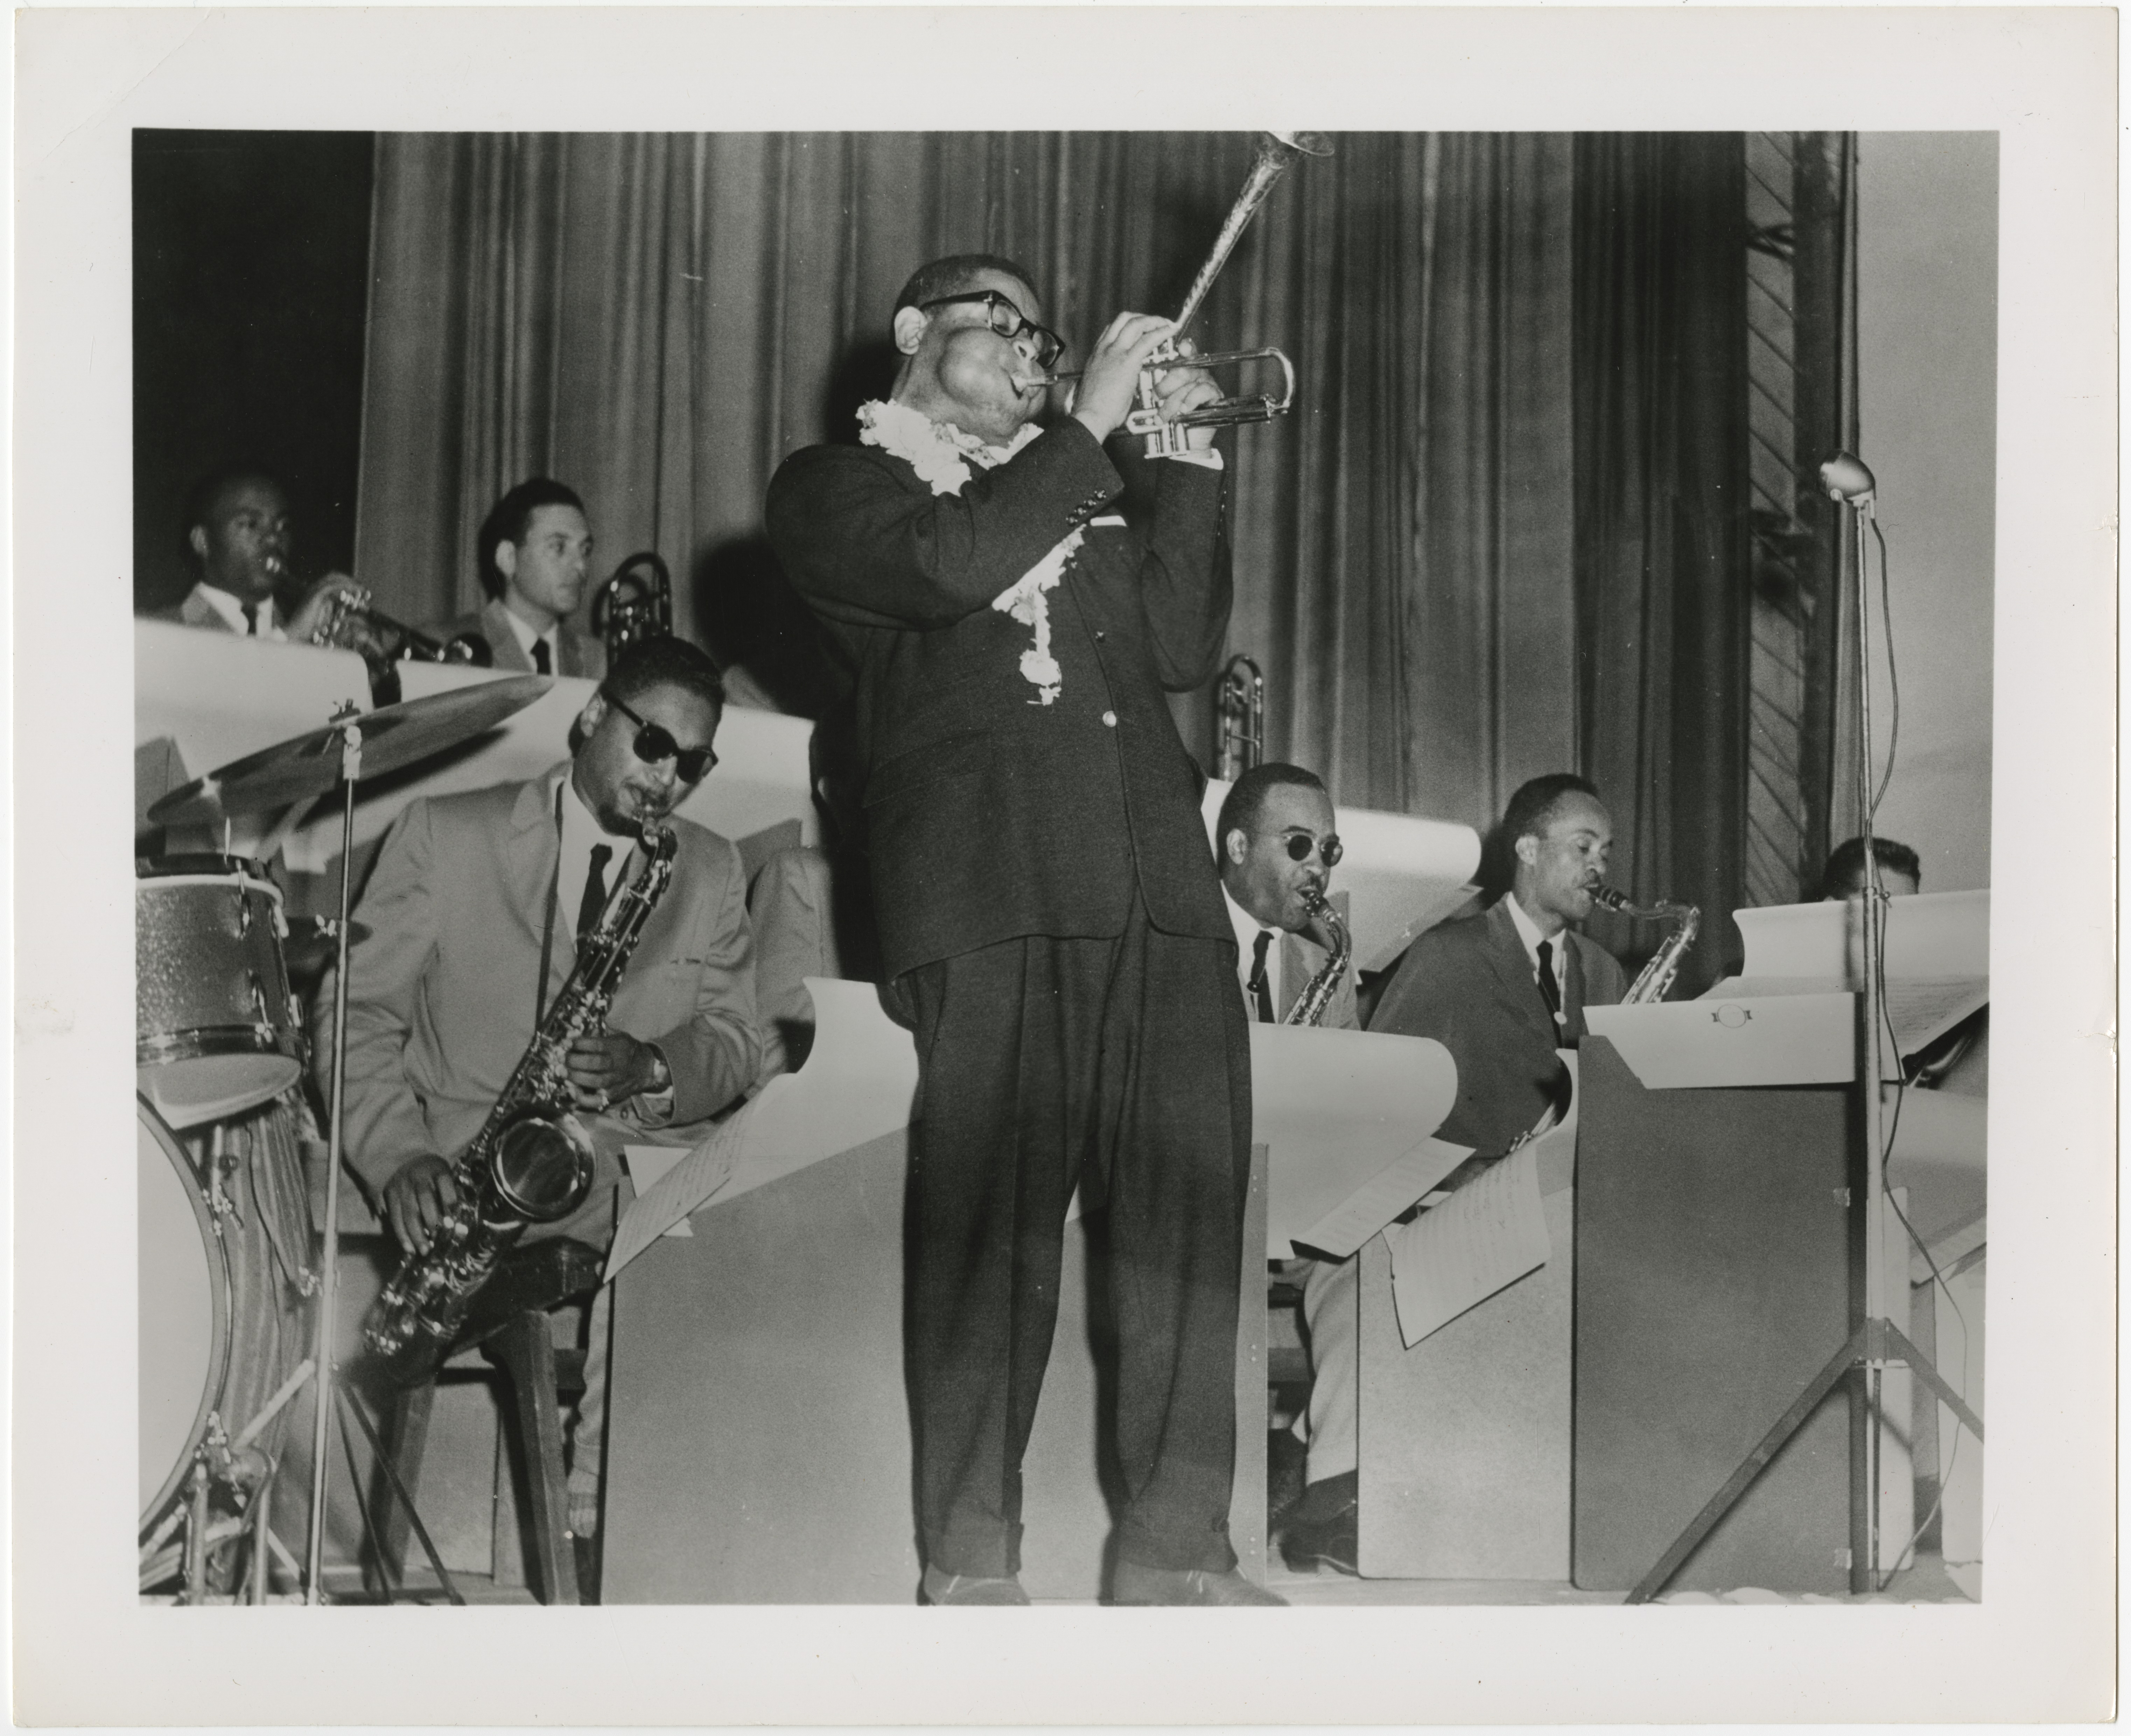 A black and white photograph of Dizzy Gillespie playing with his band. Dizzy is standing in front of a microphone playing trumpet with his characteristic blown out cheeks. Three saxophonists are seated directly behind him.